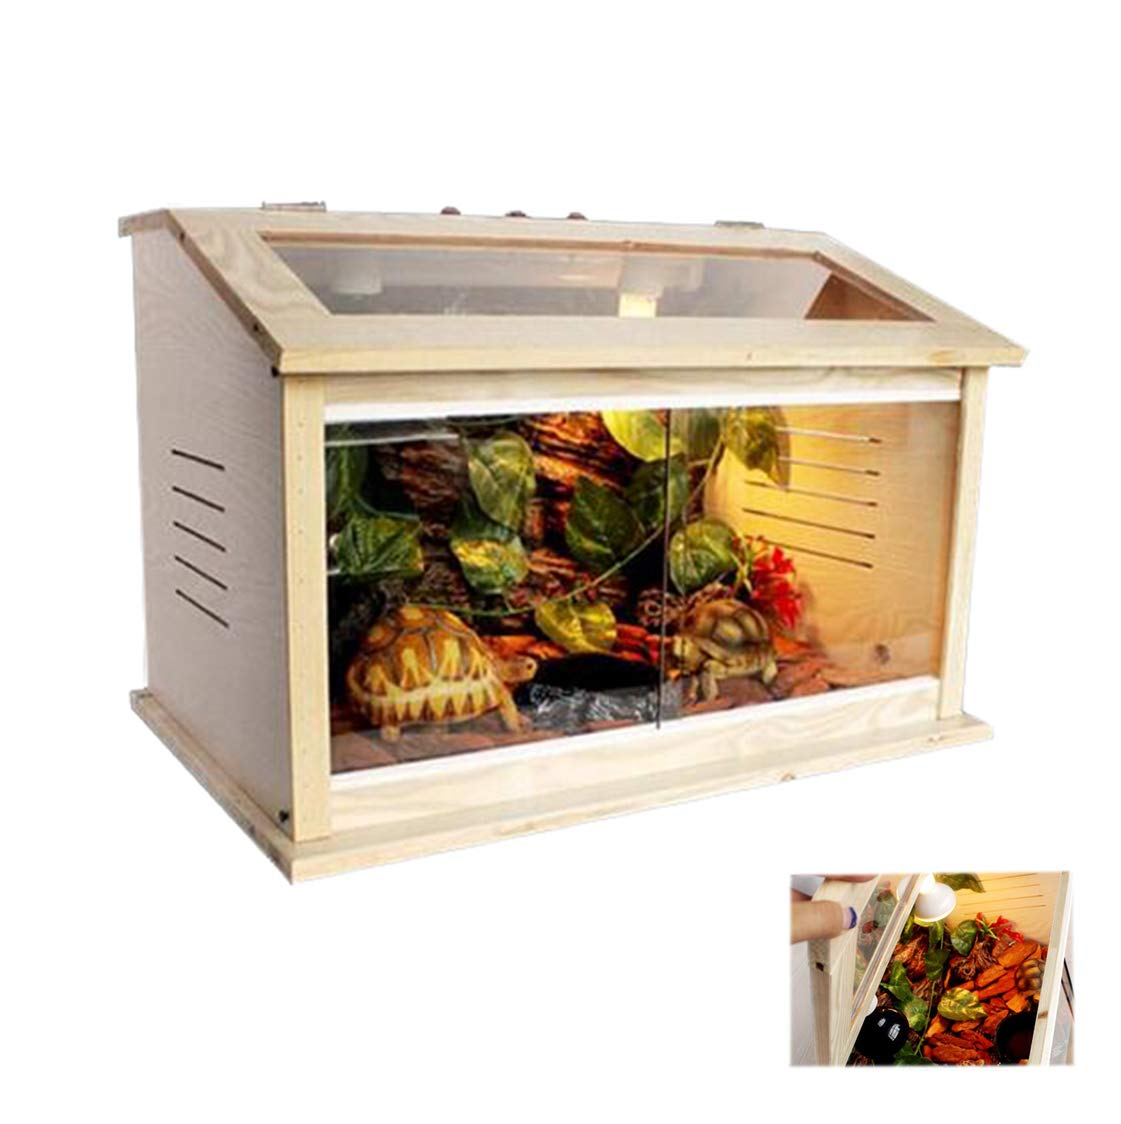 CJN Reptile Wooden Container,Lizard Tank,DIY Removes The Bevel,Breathable Window,External Switch,Glass Moving Door,Application Of Amphibiansturtle Lizard Snake,80  40  40Cm